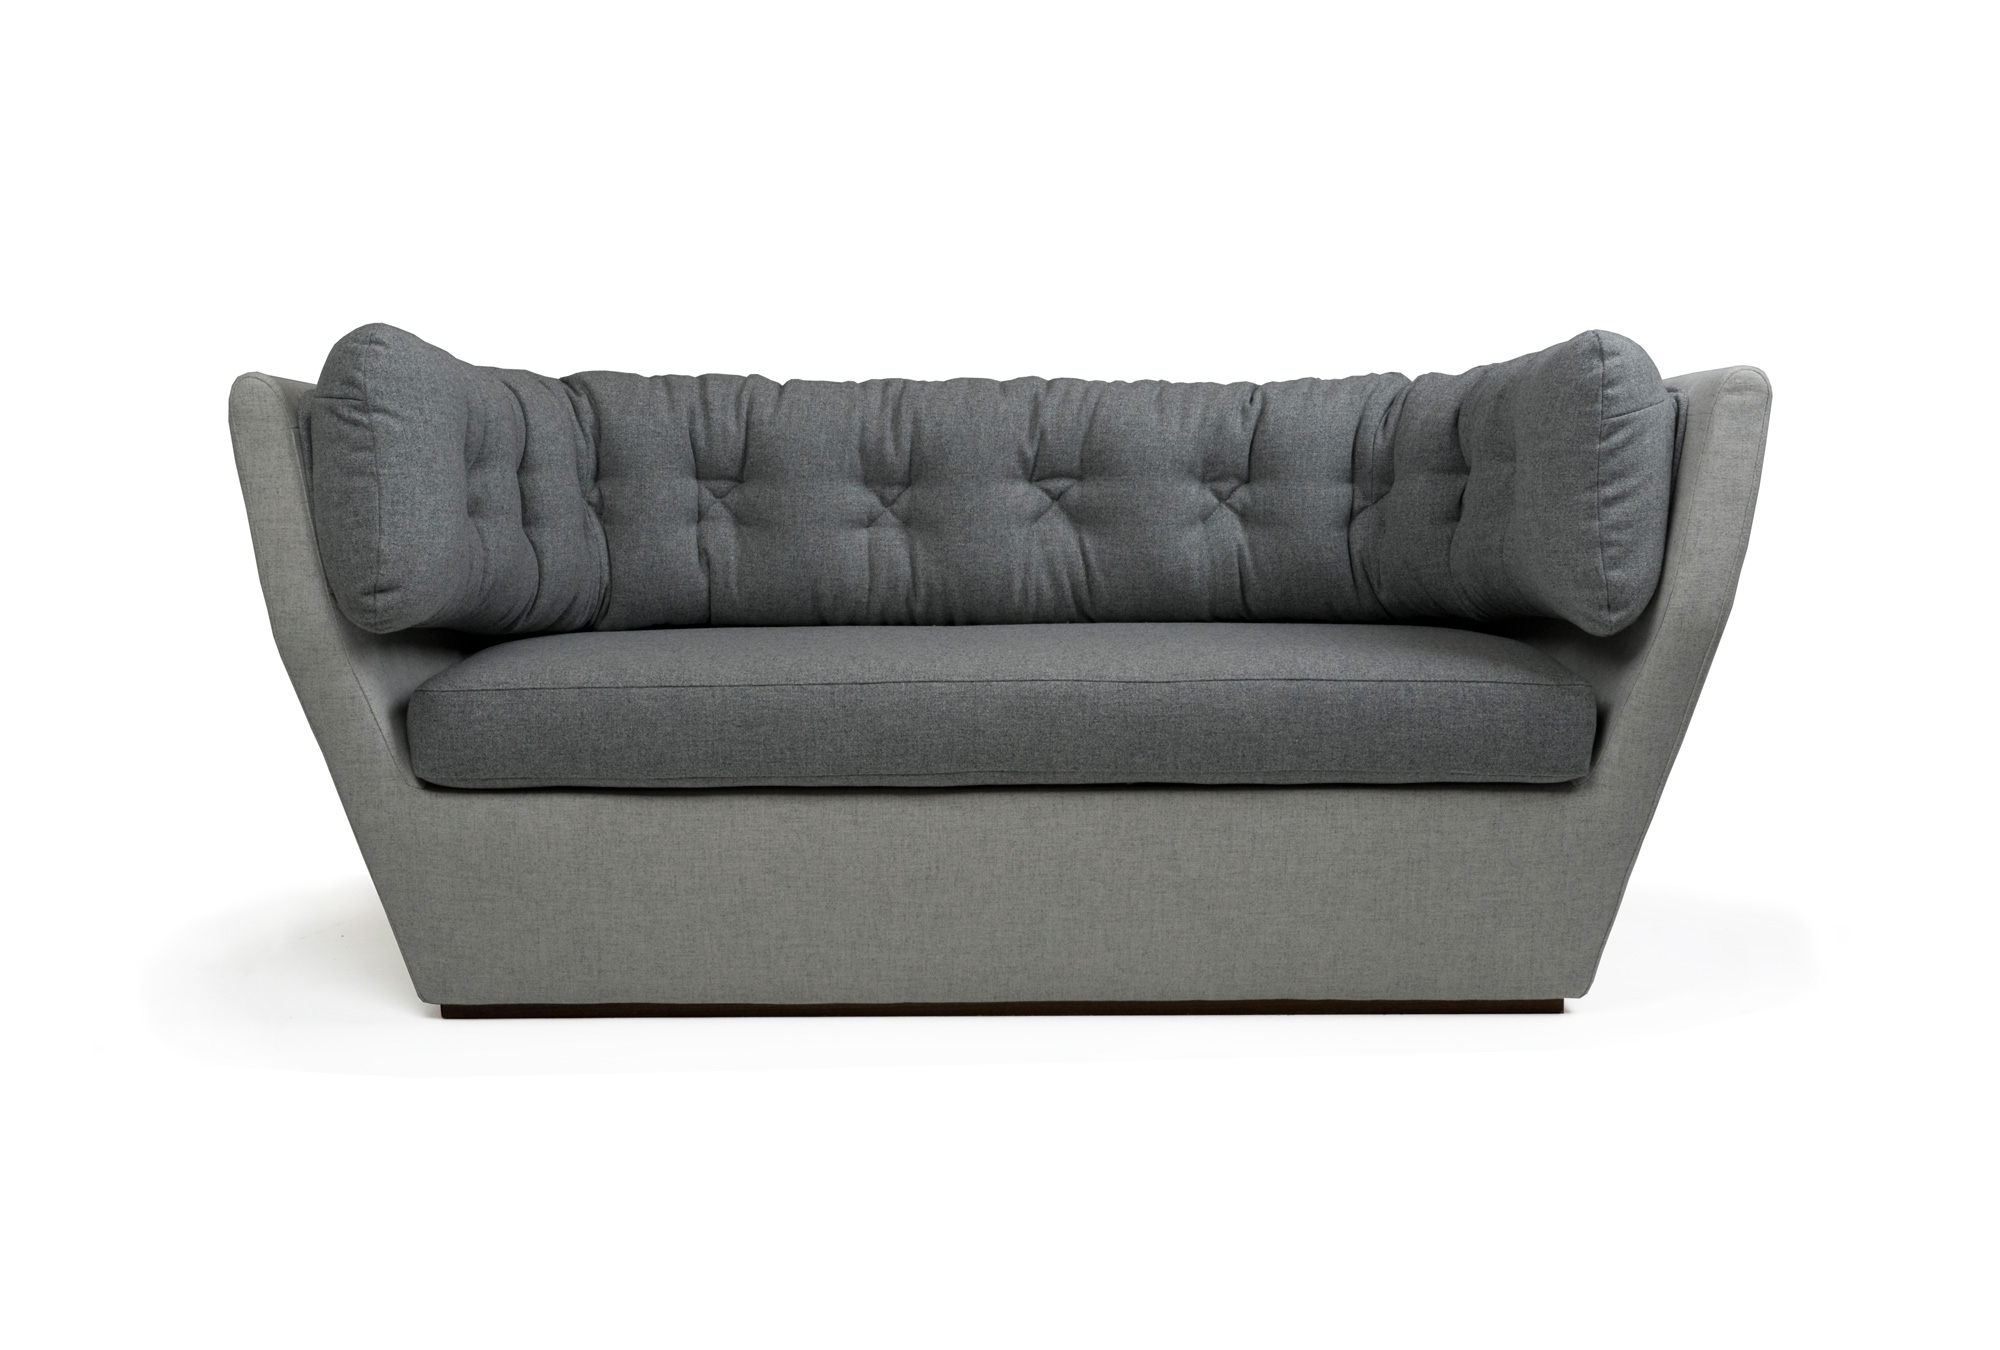 Small Two Seater Sofa Save 300 Tangier 2 Seater Fabric Sofa For Two Seater Chairs (Image 14 of 15)